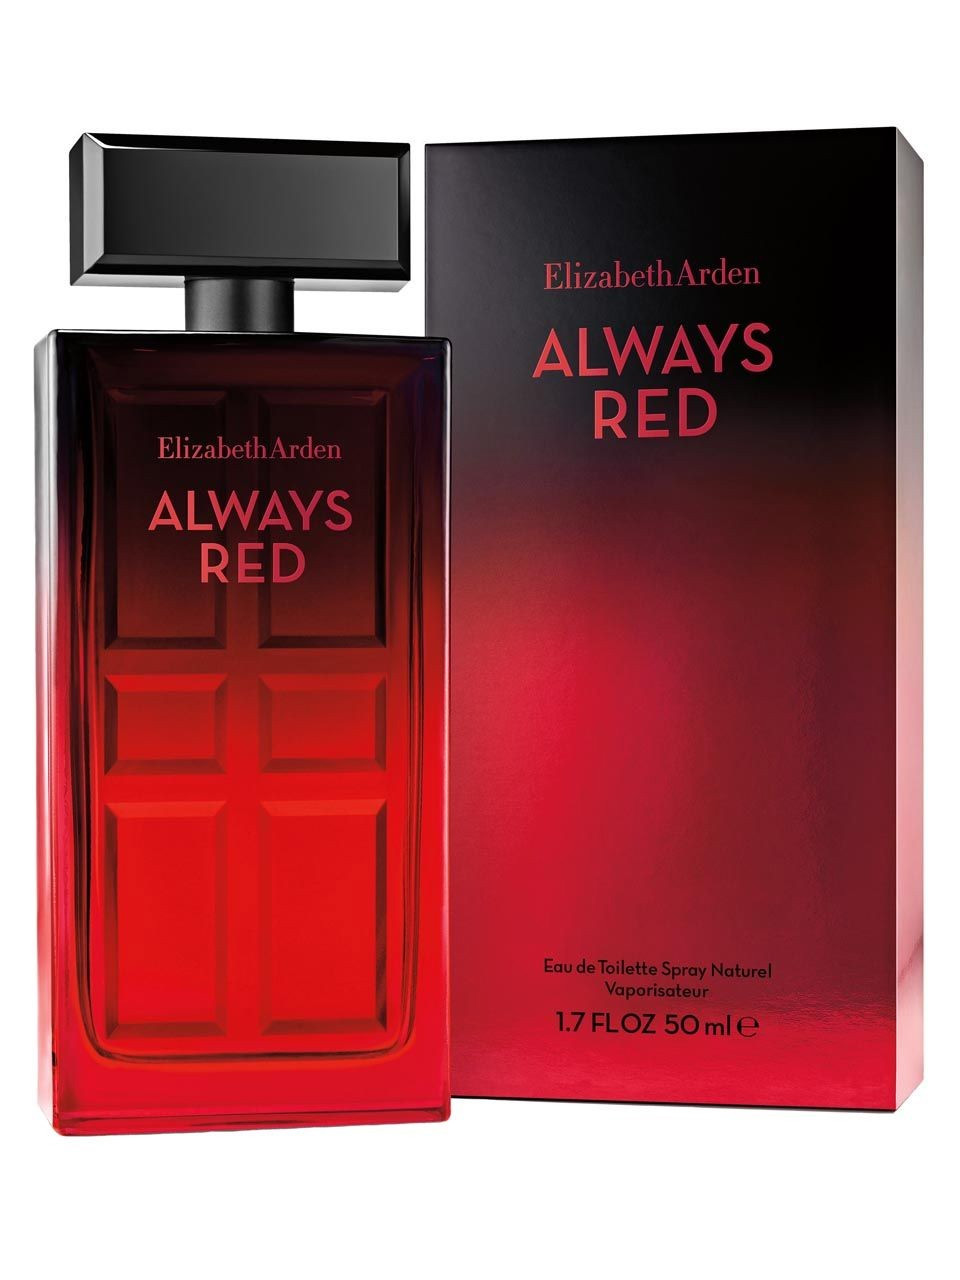 Always Red Elizabeth Arden Perfume A New Fragrance For